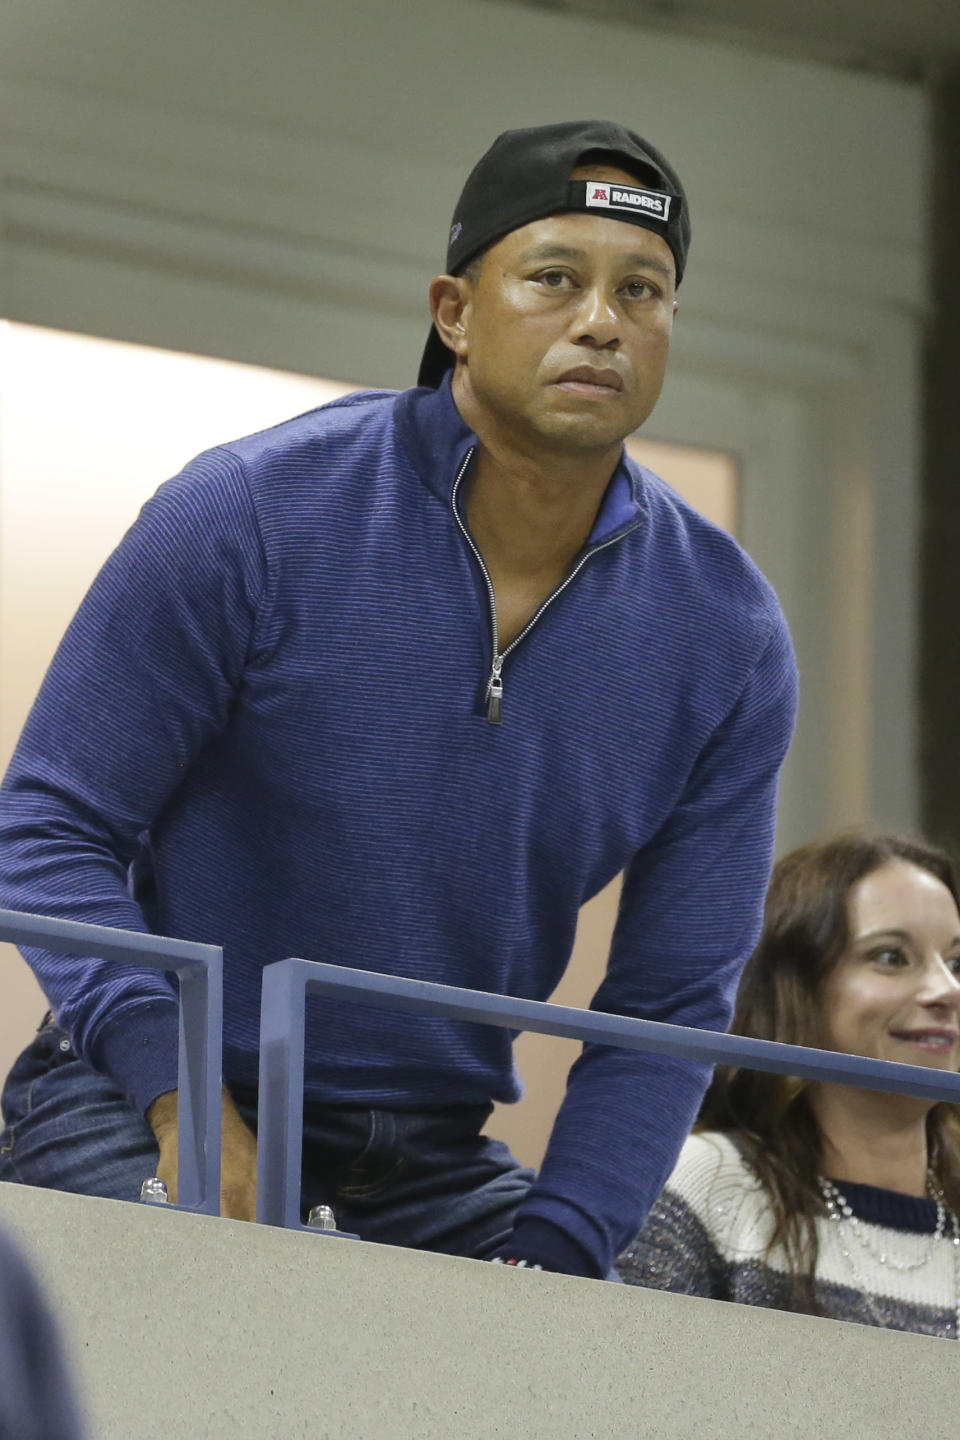 Golfer Tiger Woods watches a match between Rafael Nadal, of Spain, and Marin Cilic, of Croatia, during the fourth round of the U.S. Open tennis tournament, Monday, Sept. 2, 2019, in New York. (AP Photo/Seth Wenig)